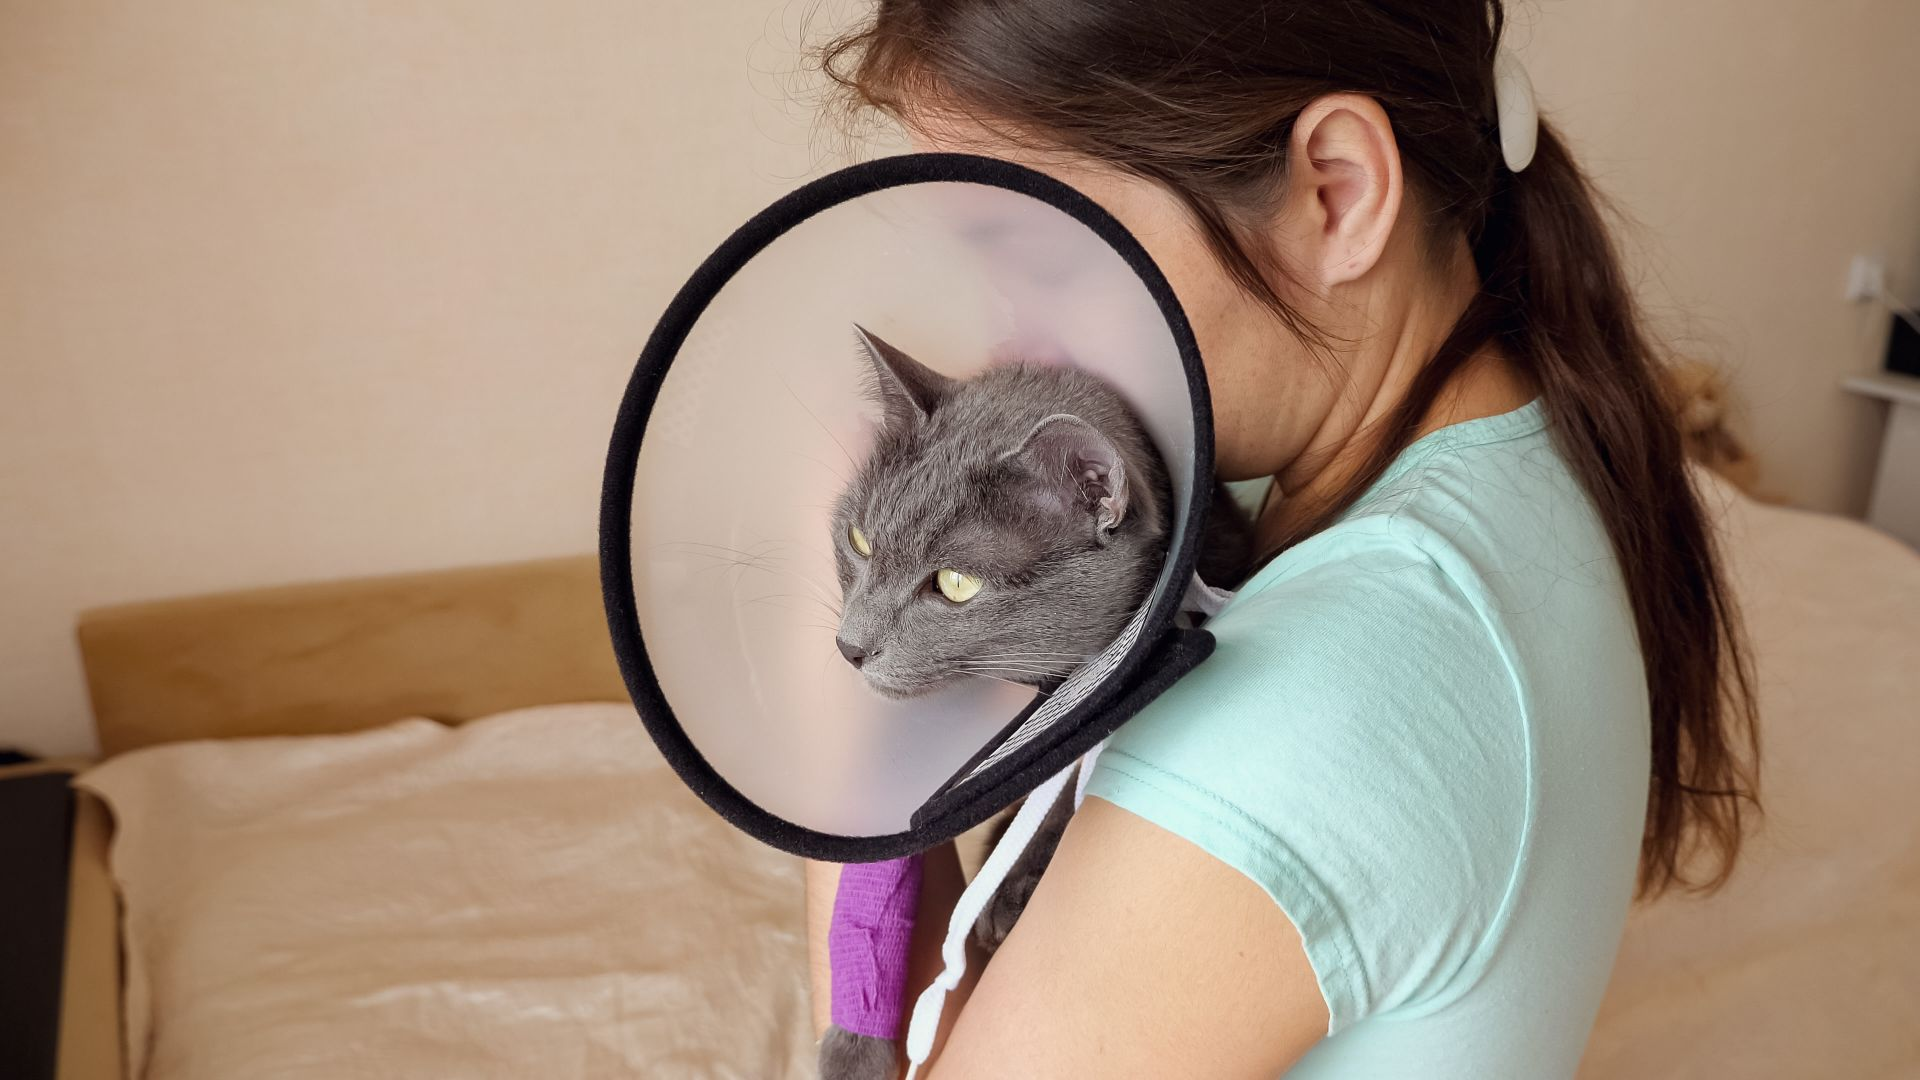 A woman holds a cat in a cone of shame.